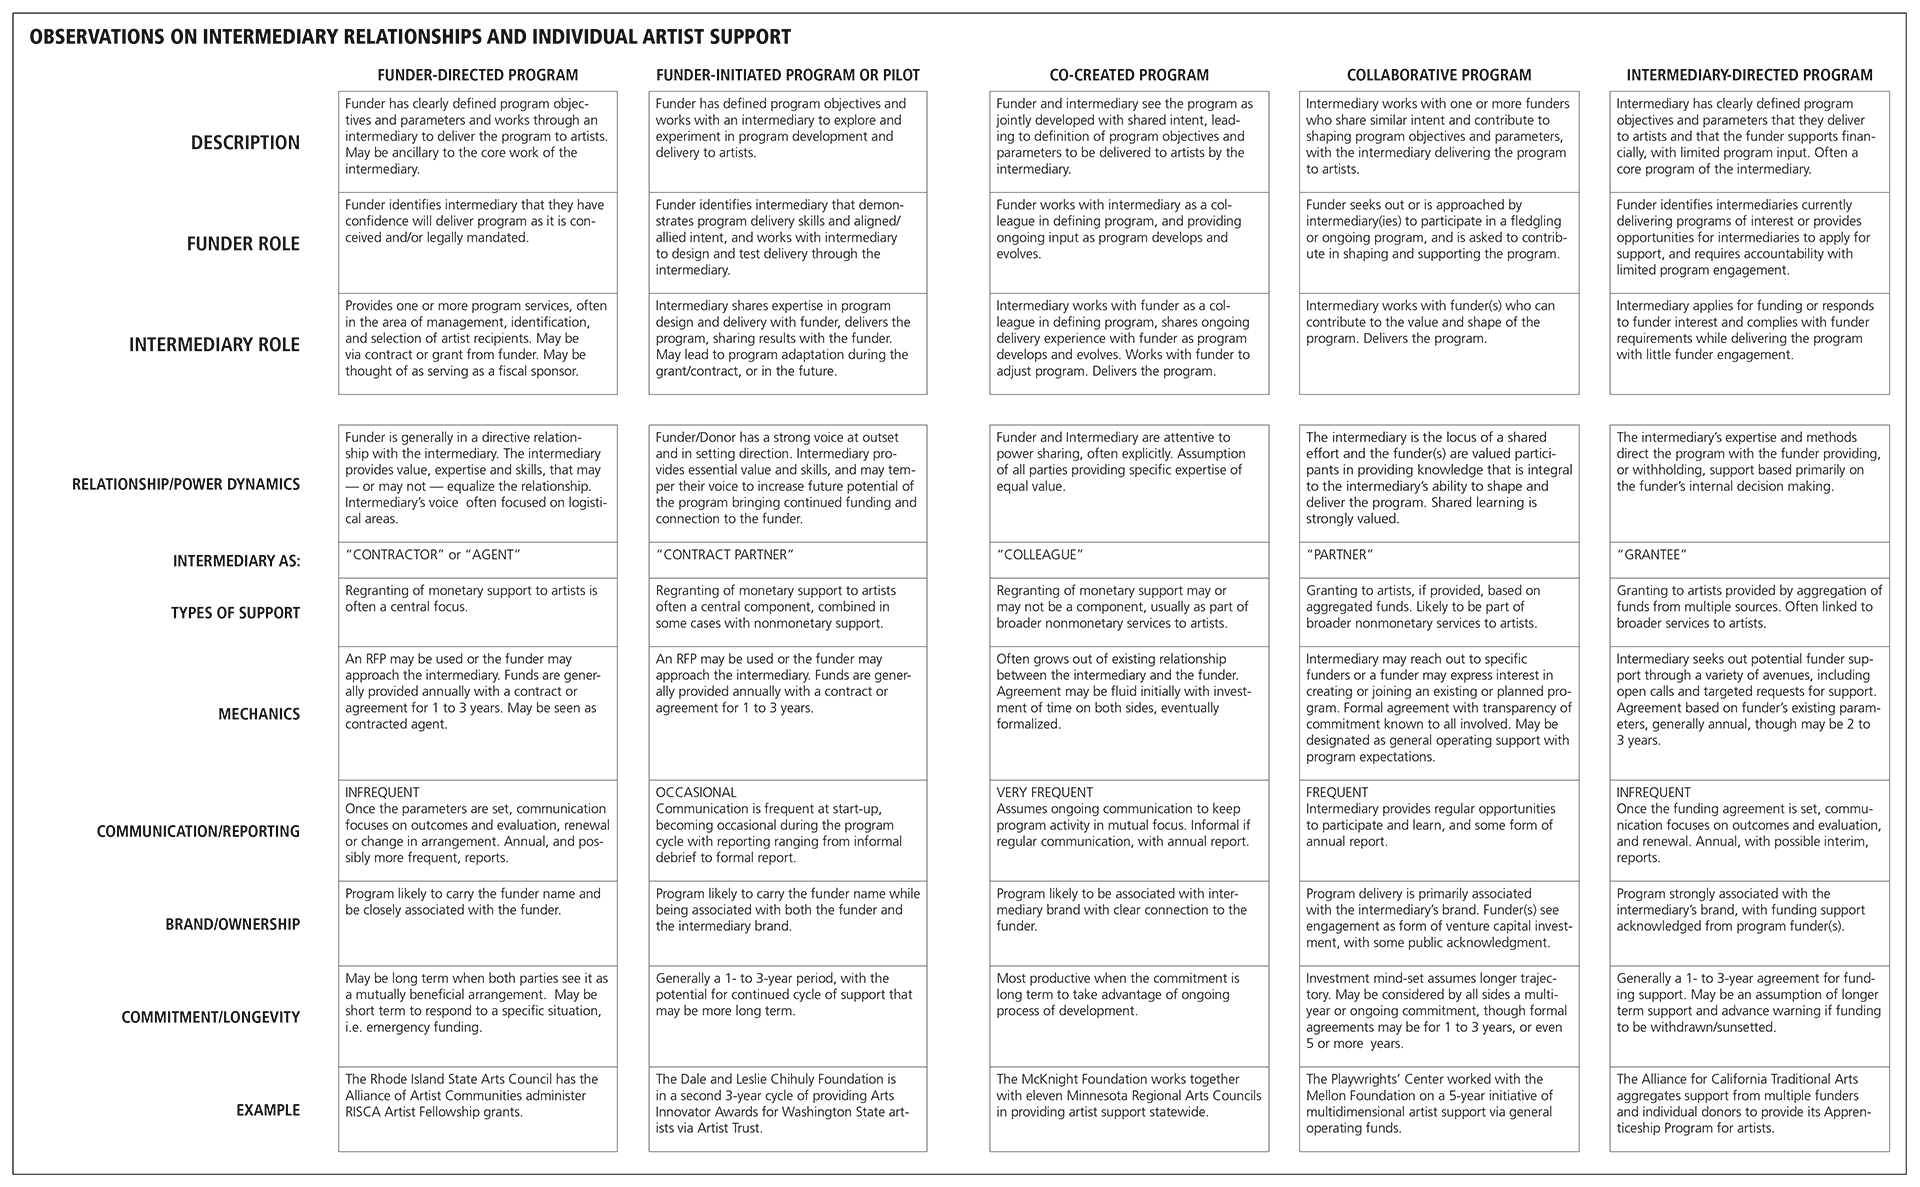 Chart: Observations on Intermediary Relationships and Individual Artist Support. Click to enlarge.